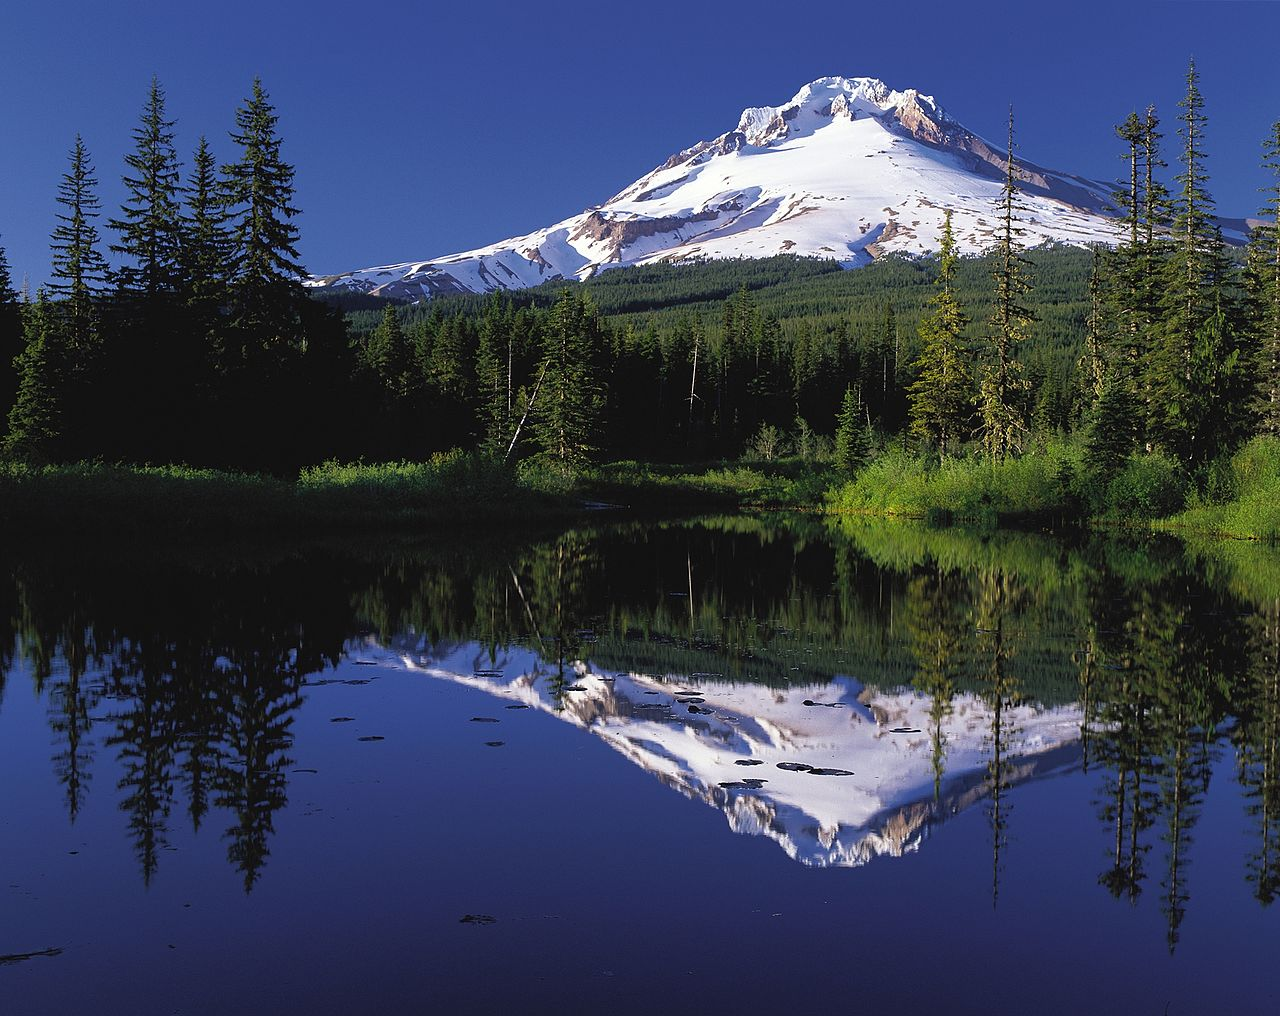 Mount Hood & Mirror Lake, Oregon (Reflection) - Photo Public Domain